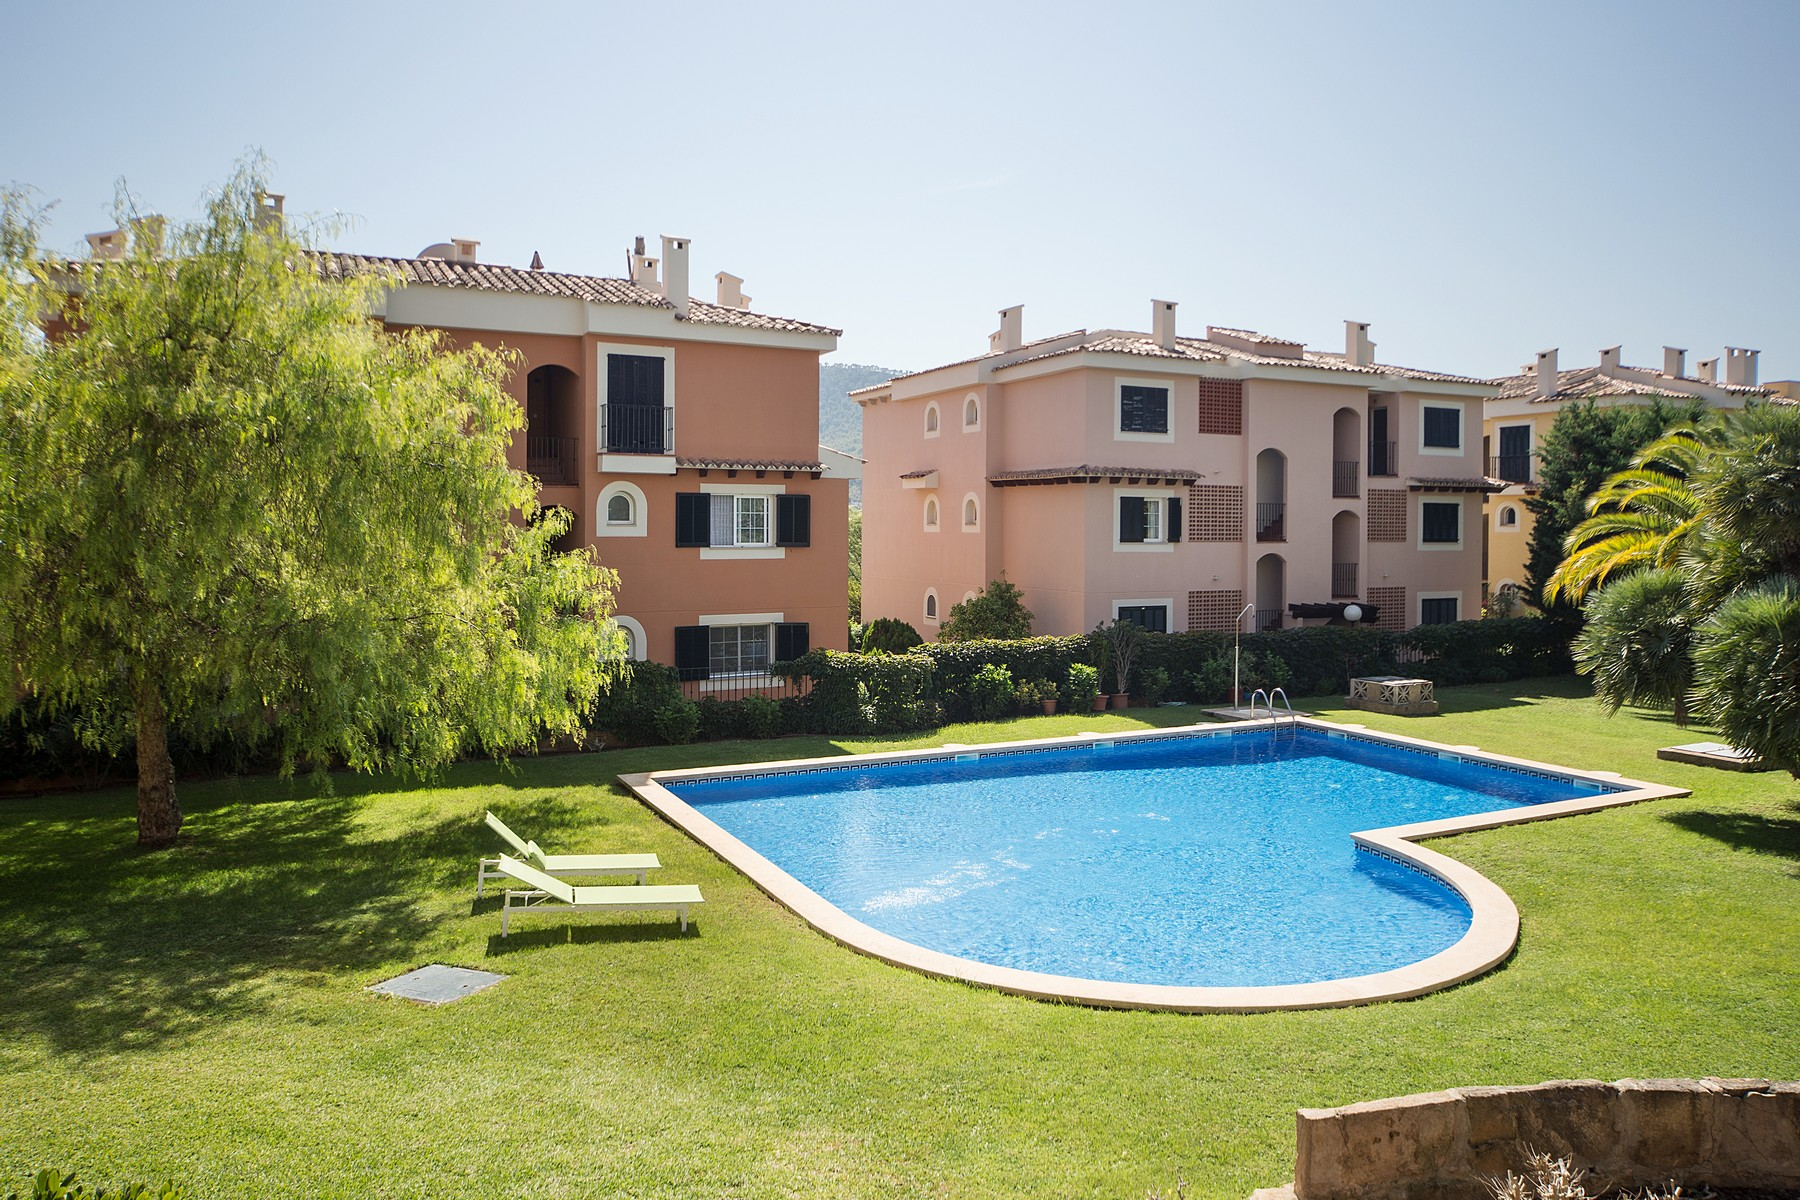 Appartamento per Vendita alle ore Apartments in beautiful community in Port Andratx Port Andratx, Maiorca, 07157 Spagna